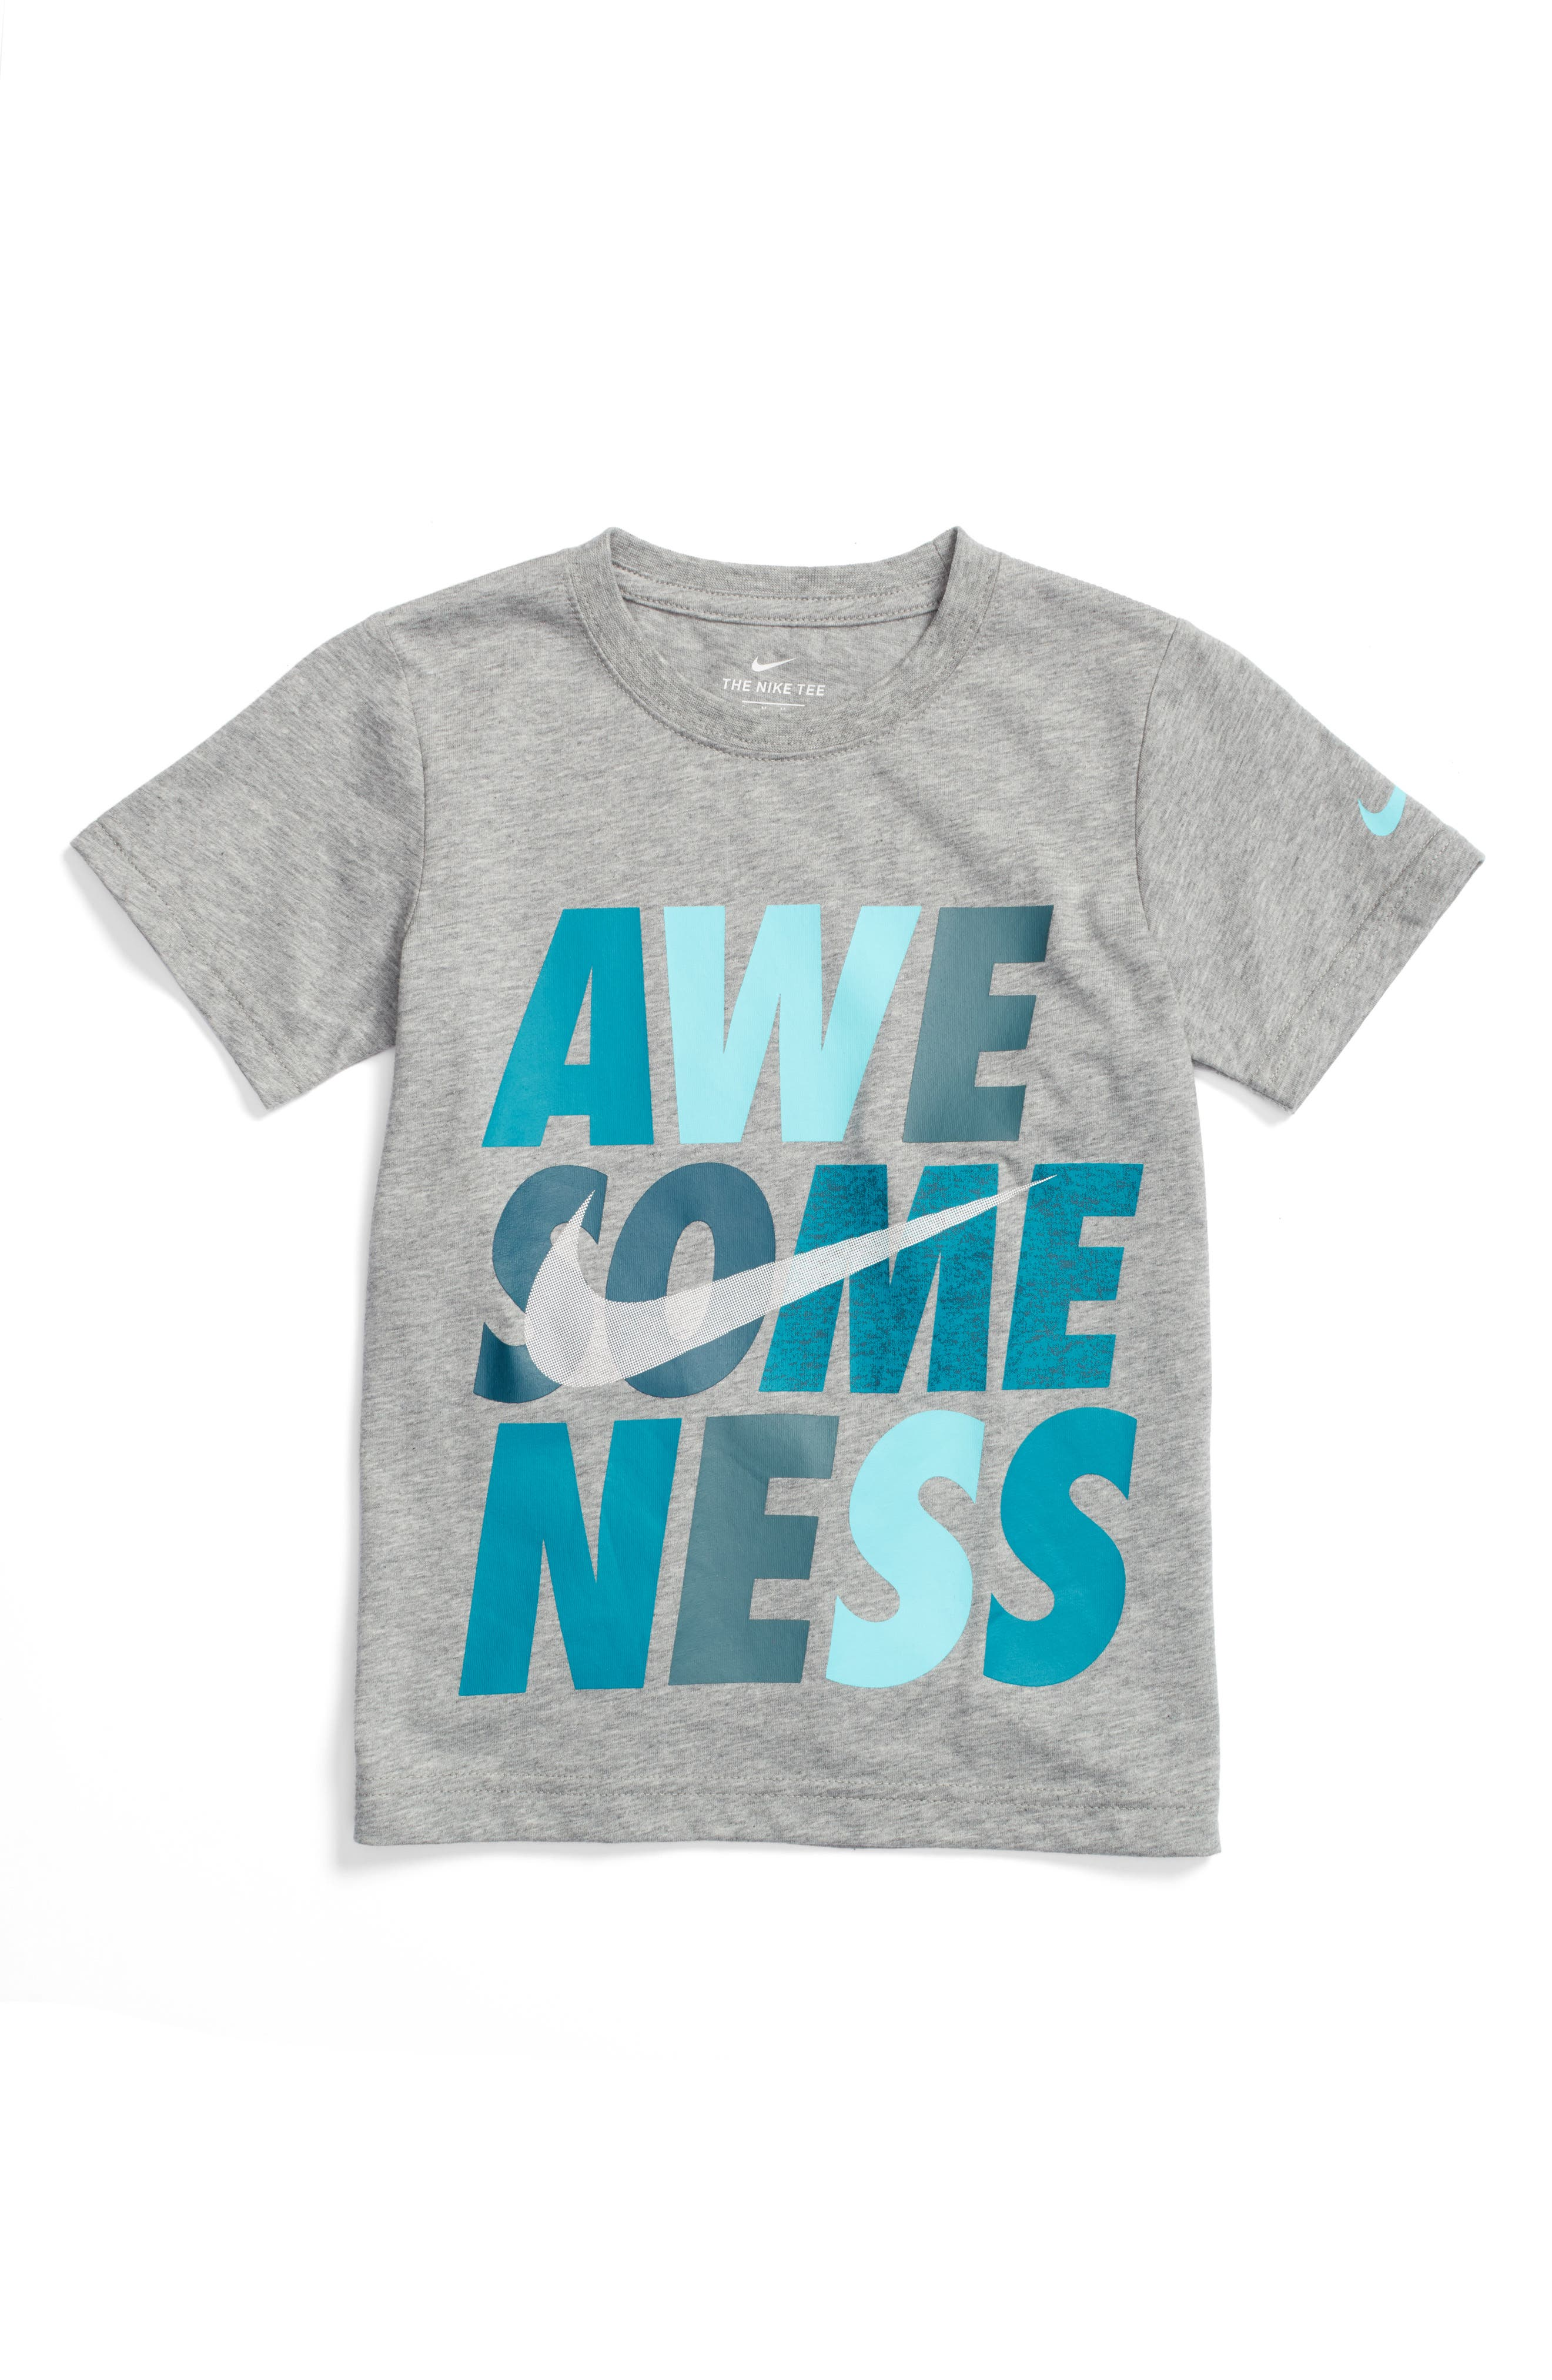 Nike Awesomeness T-Shirt (Toddler Boys & Little Boys)